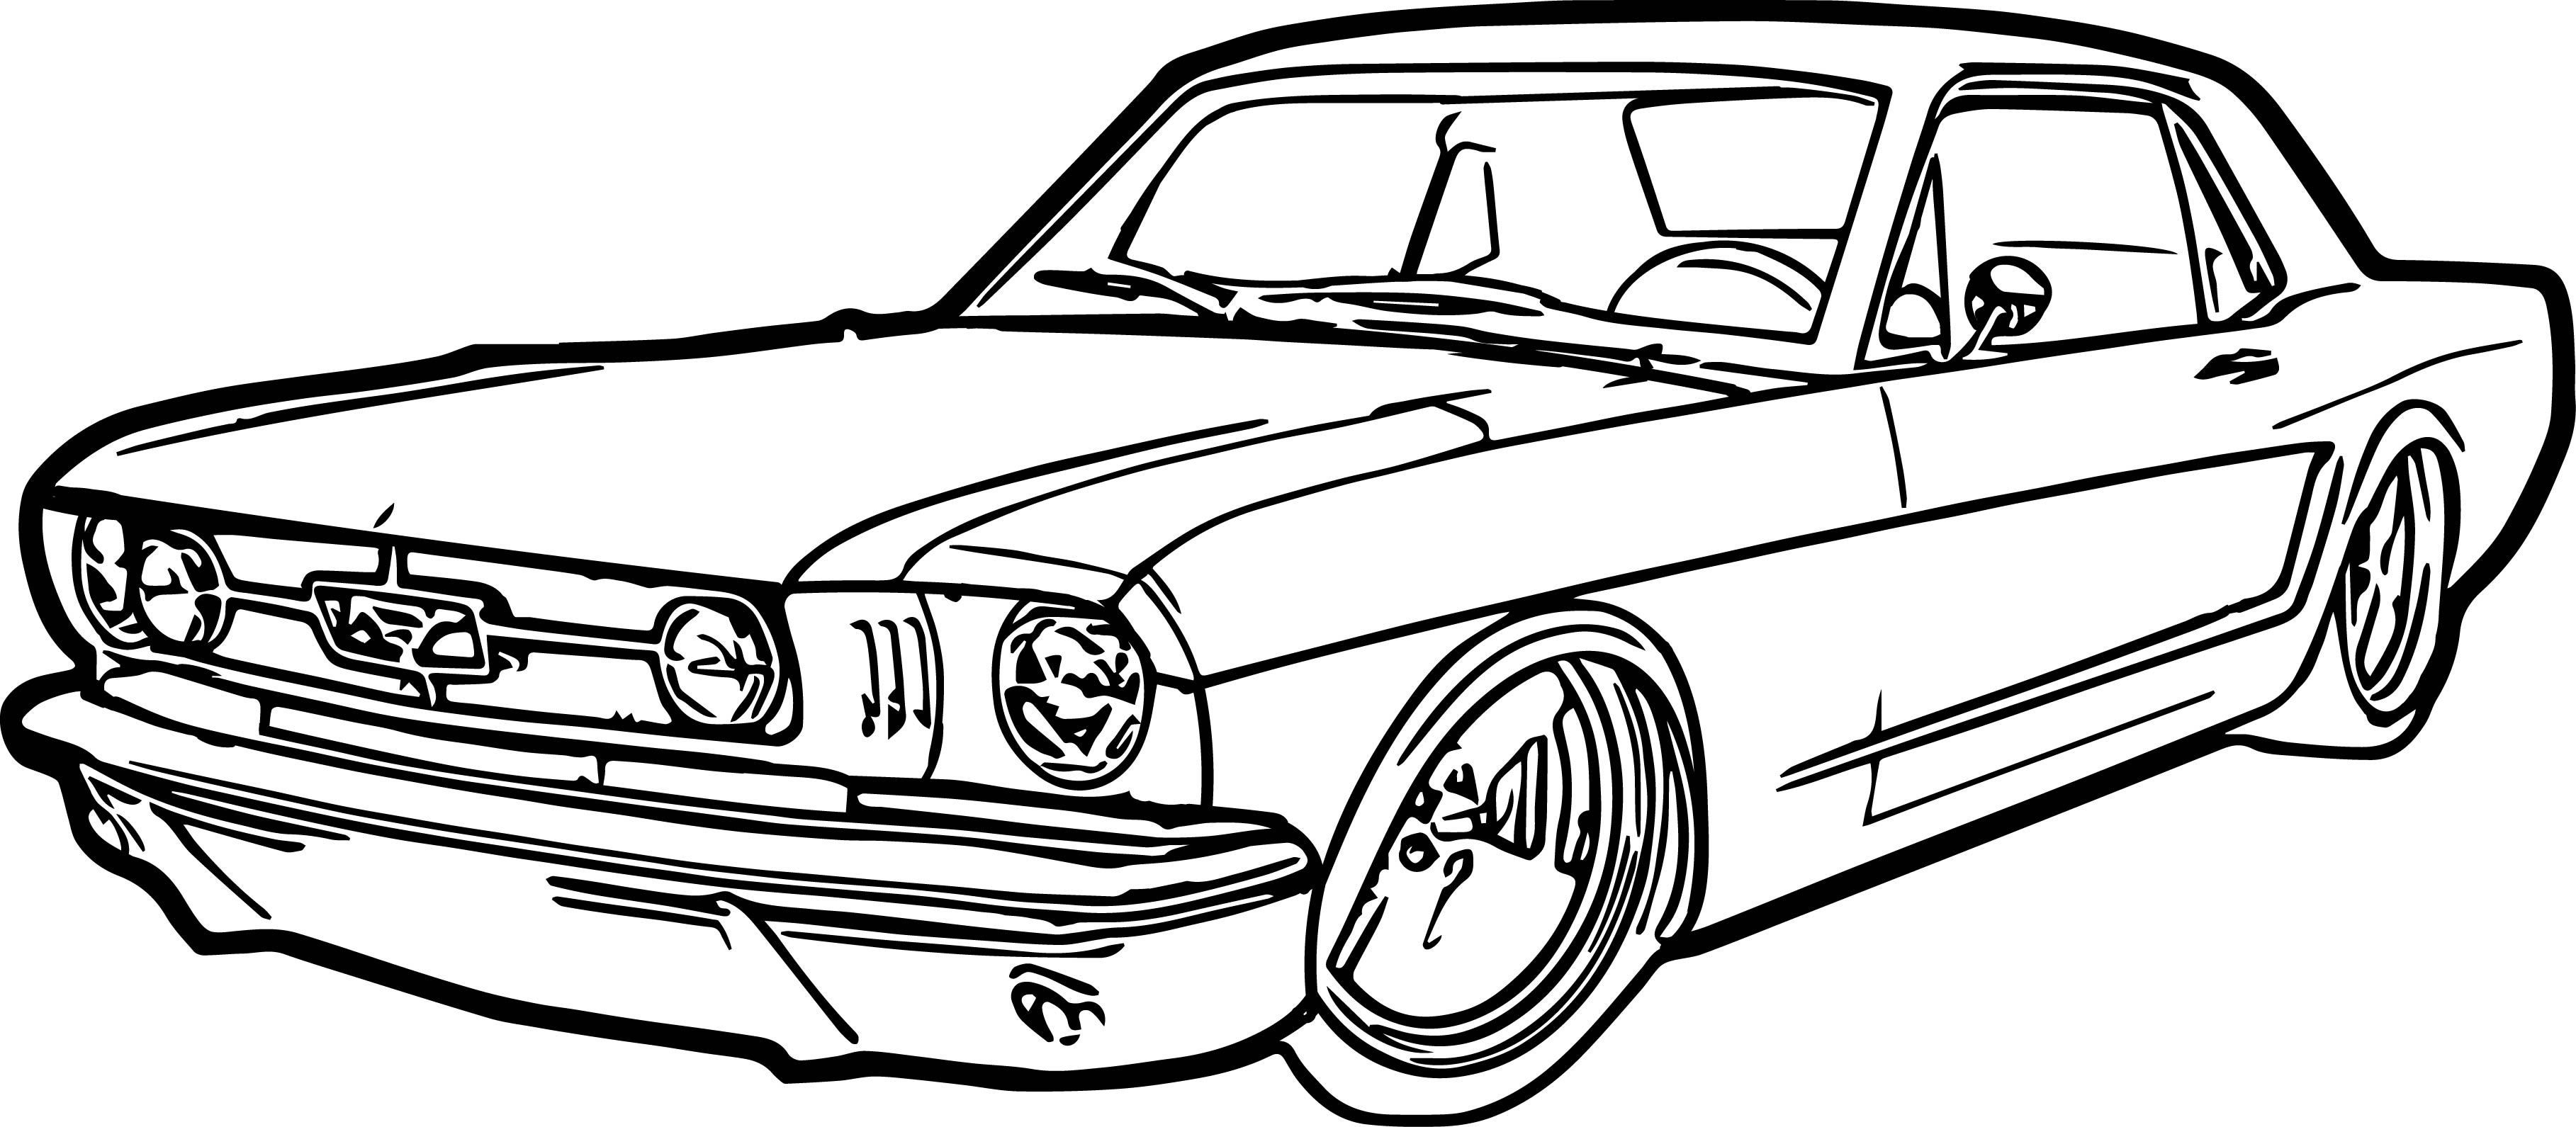 Car Coloring Pages Free Download Best Car Coloring Pages On